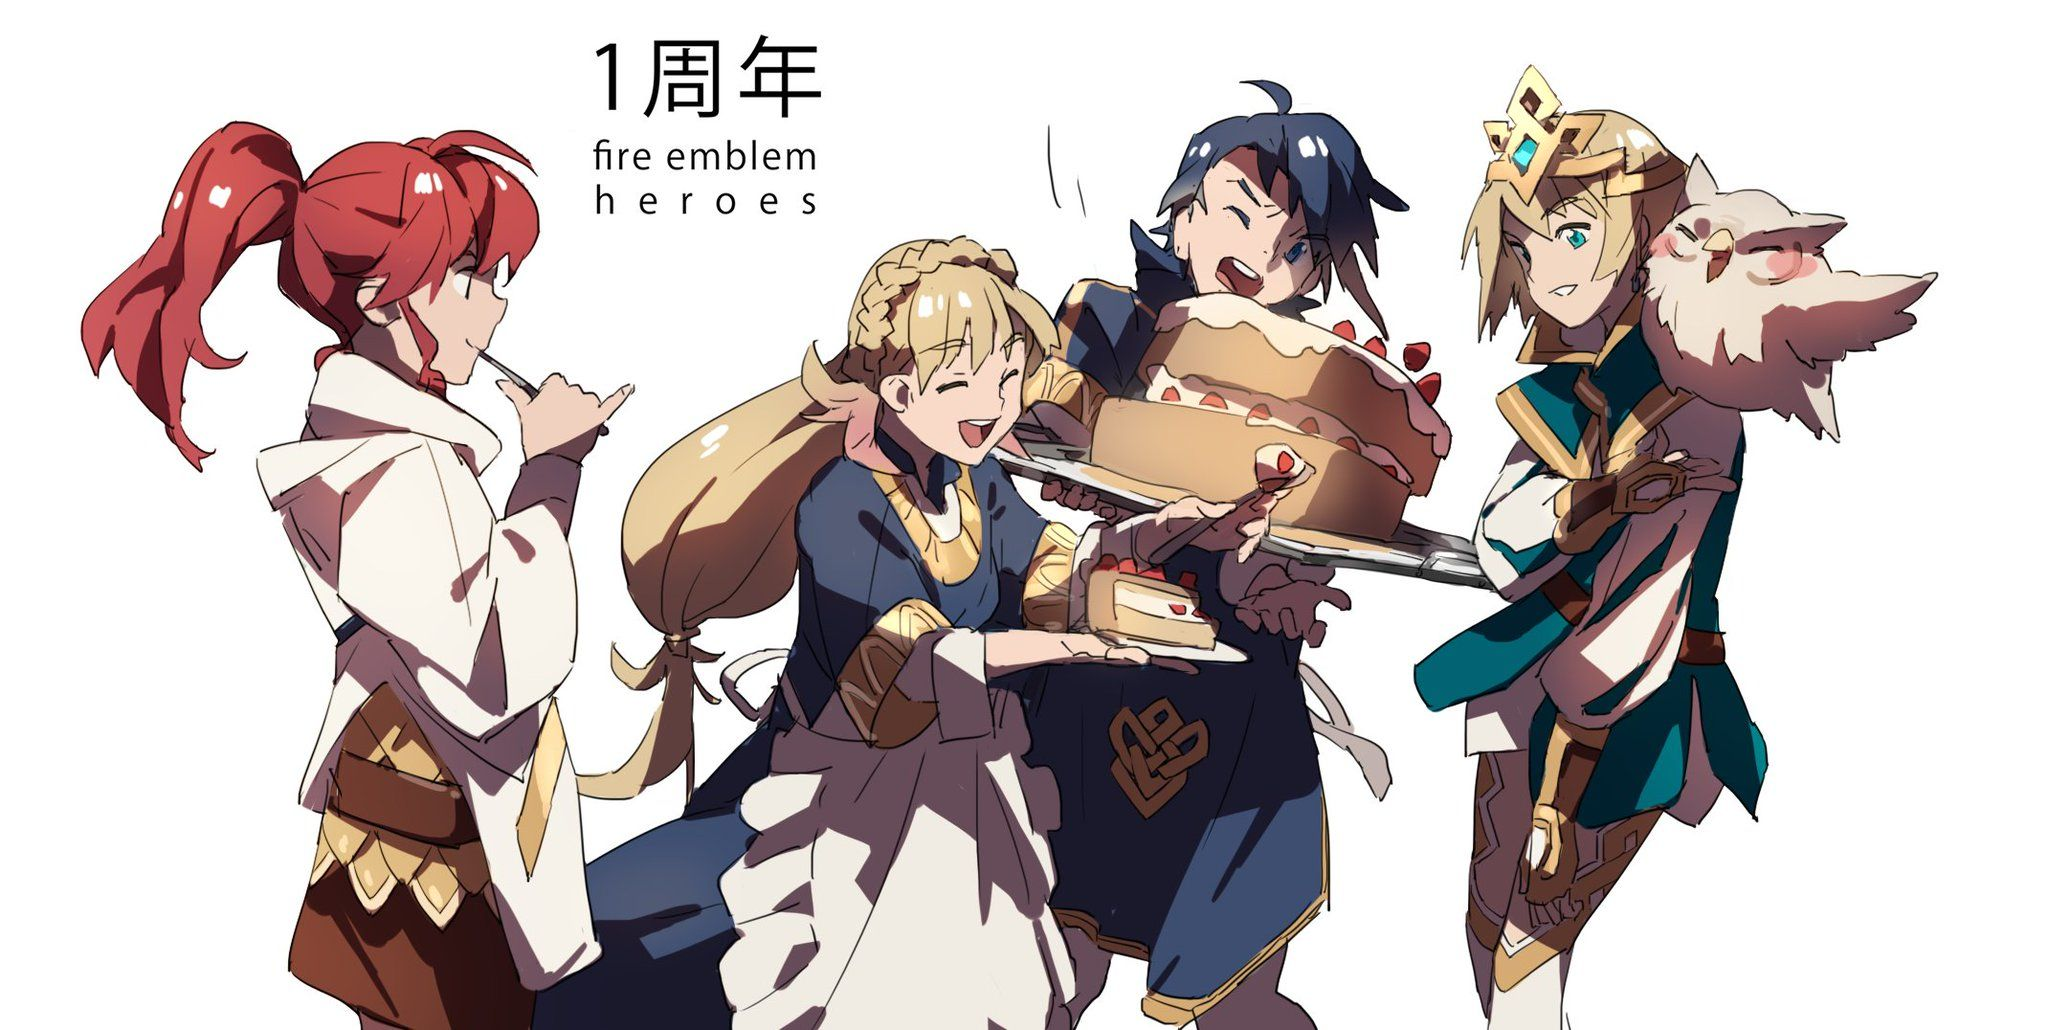 Fire Emblem Sharena X Reader: Anna, Alfonse, Sharena, Fjorm And Feh Sharing Cake